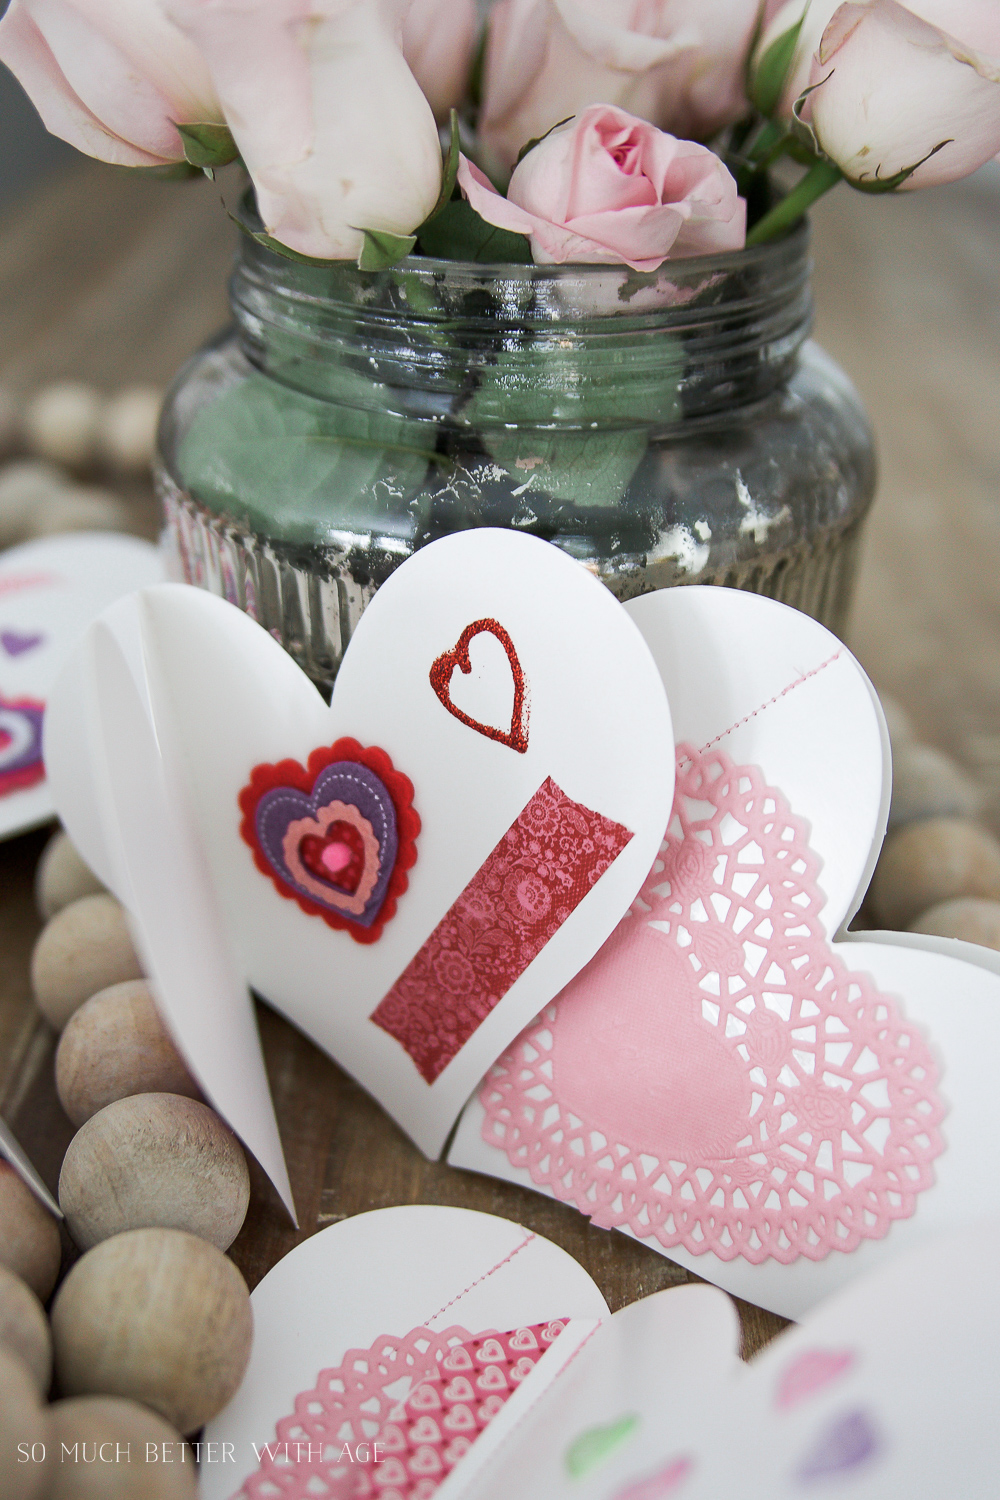 DIY stitched Valentine's Day cards / homemade cards with pink flowers in vase - So Much Better With Age